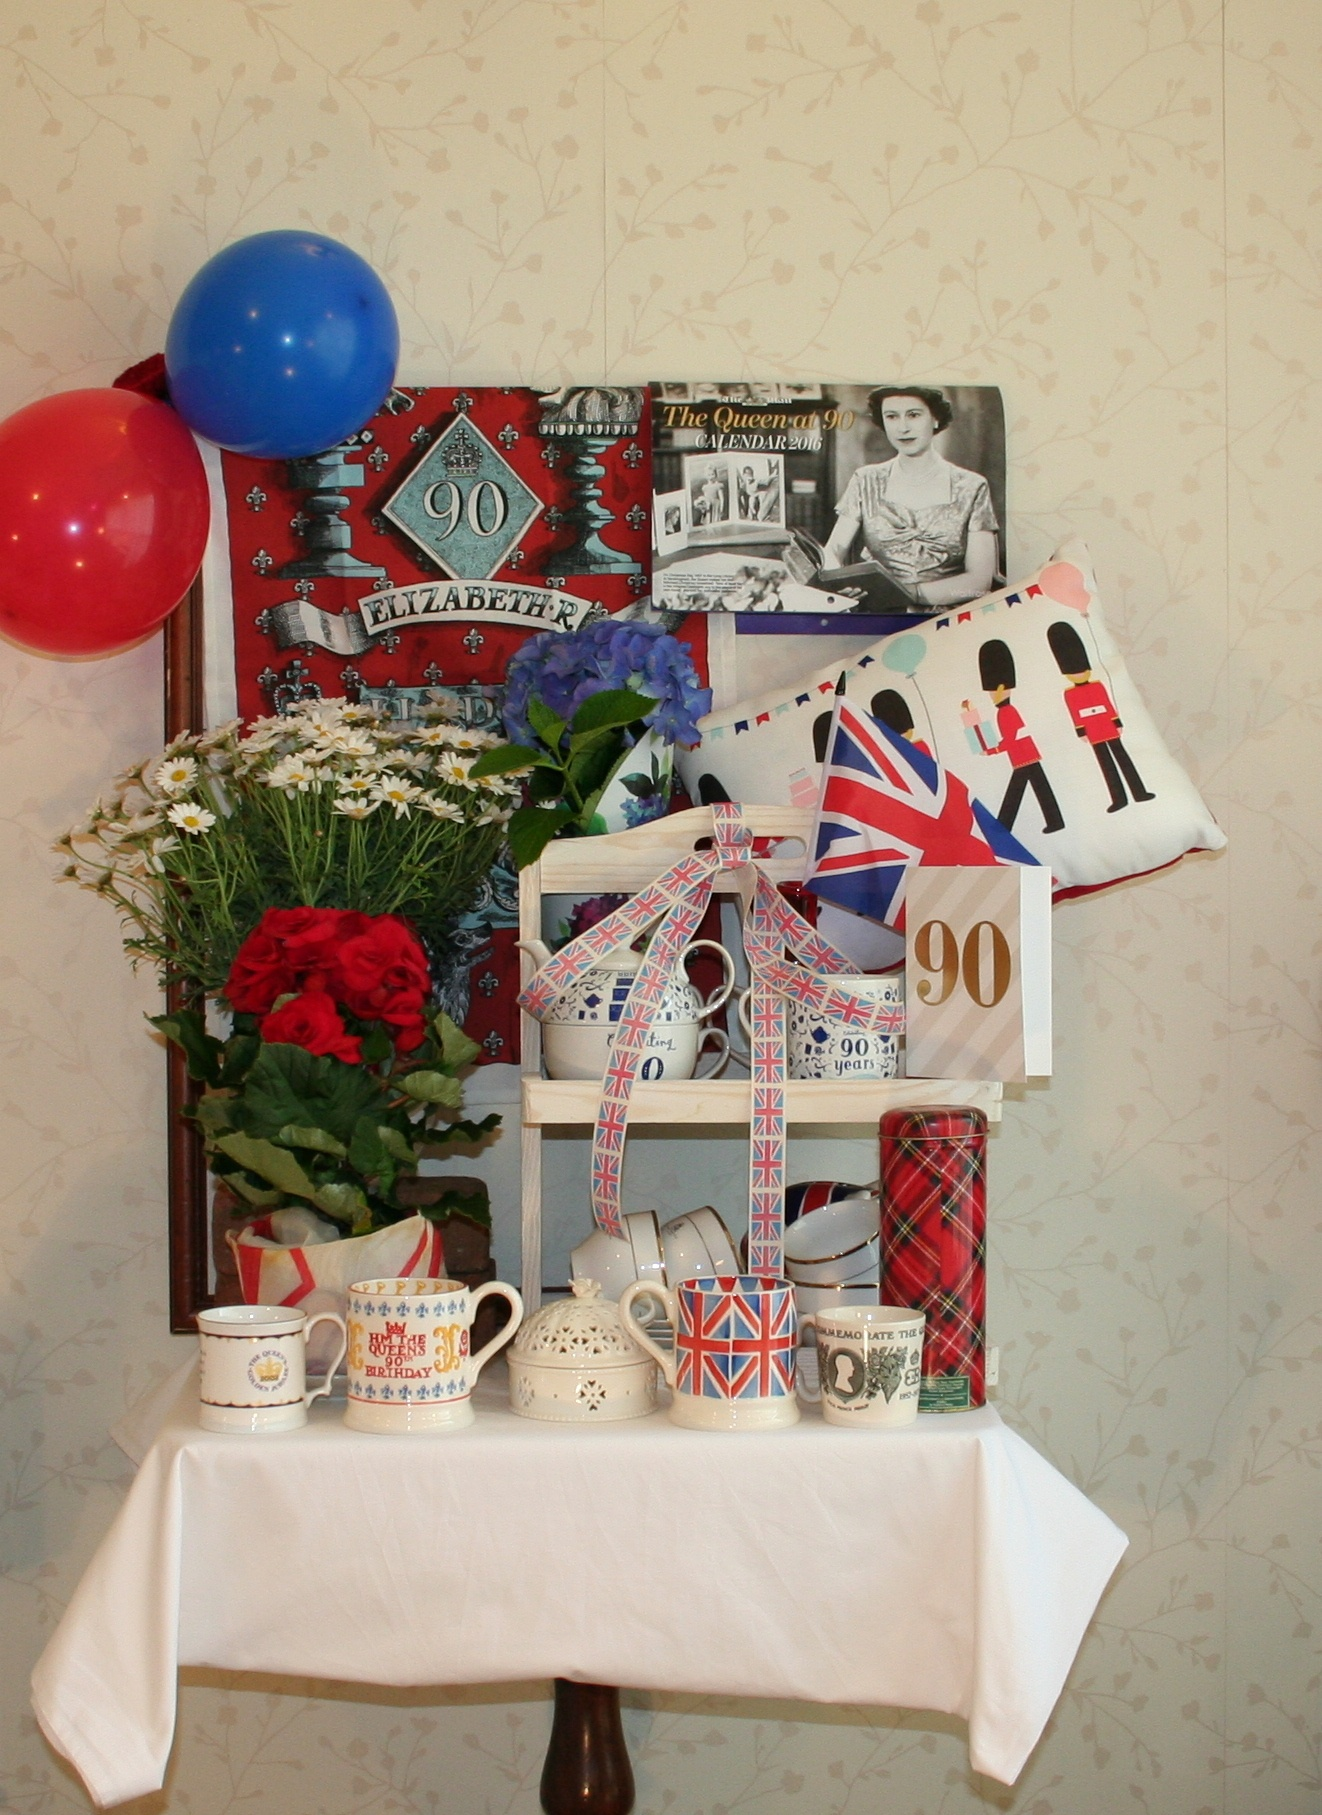 90th Birthday Greetings, Your Majesty by MargaretHalstead